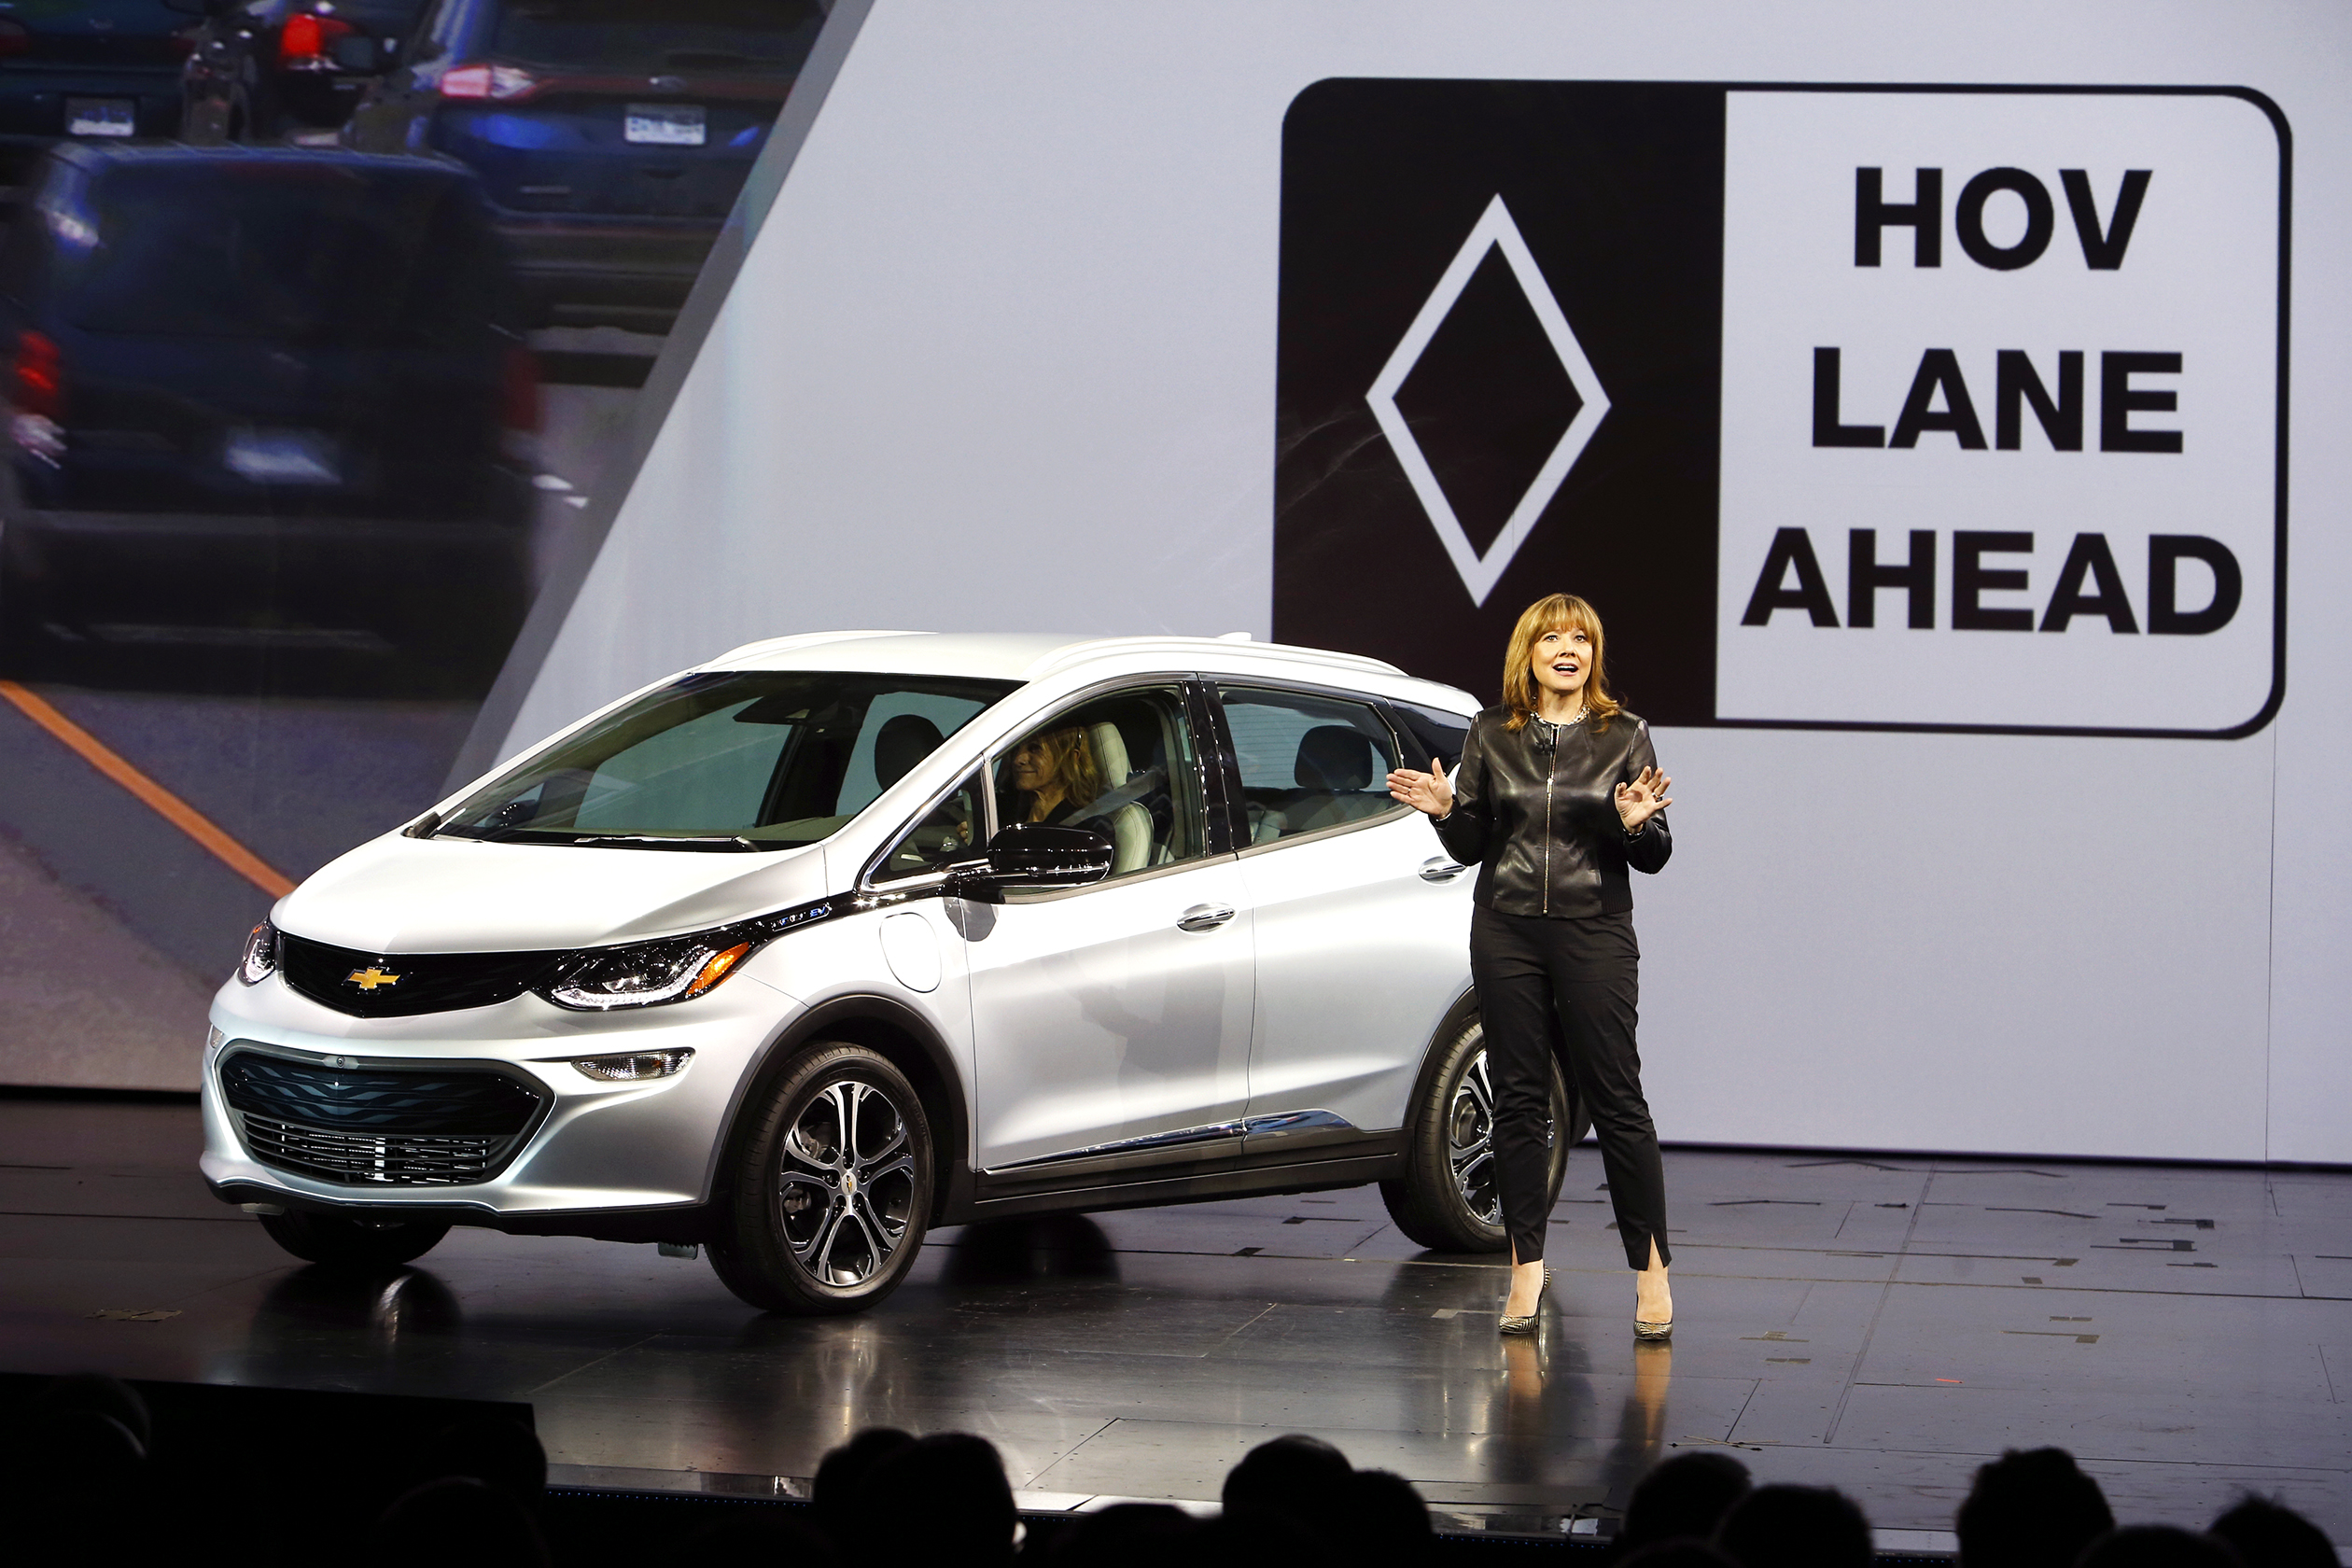 General Motors Chairman and CEO Mary Barra unveils the 2017 Chevrolet Bolt EV during a keynote address at the 2016 CES trade show in Las Vegas